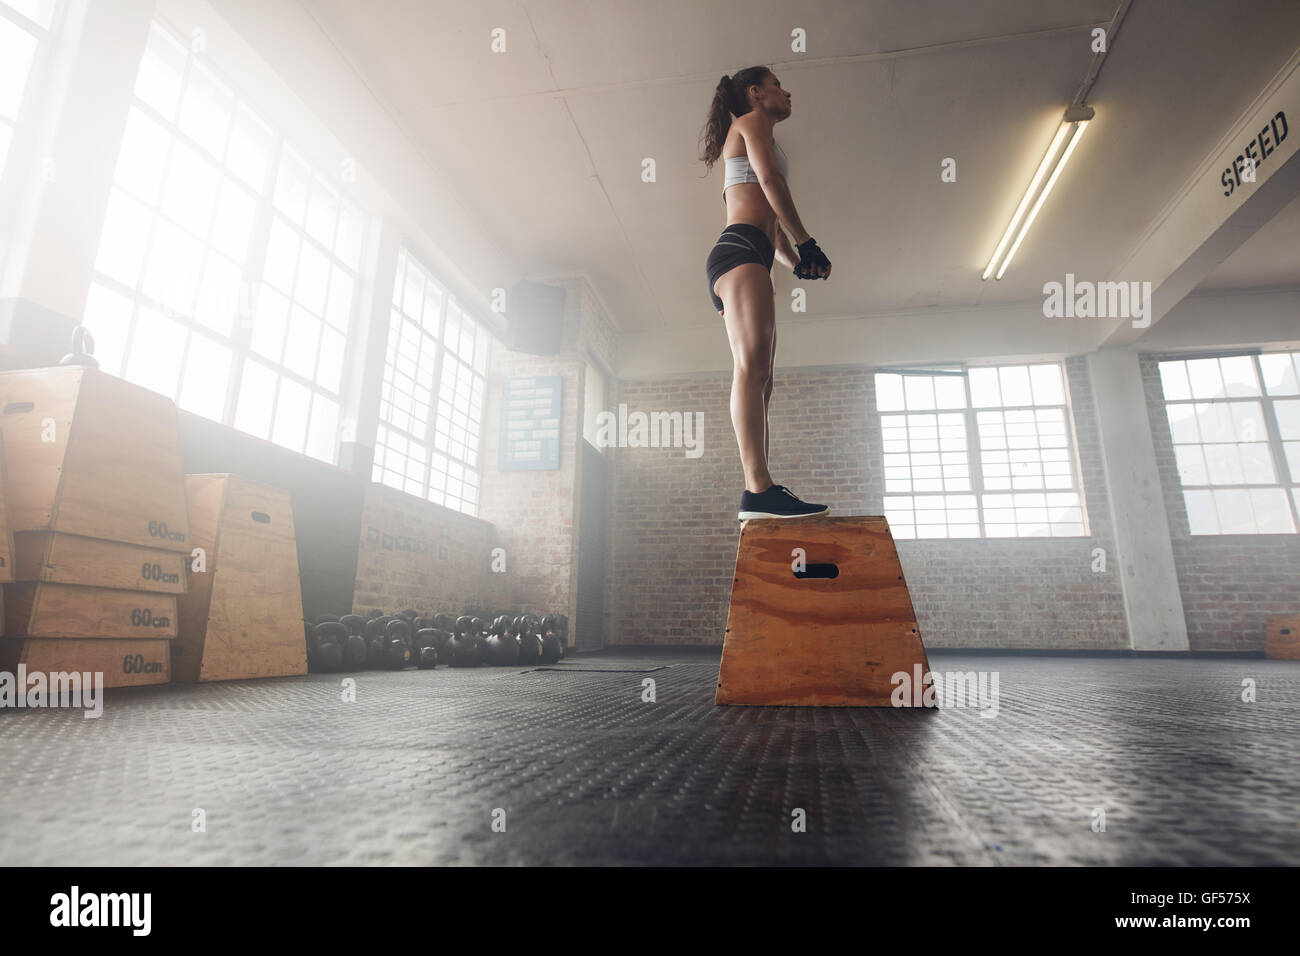 Low angle shot of fit young female model in sports wear standing on a box at gym. Muscular woman doing box jump - Stock Image